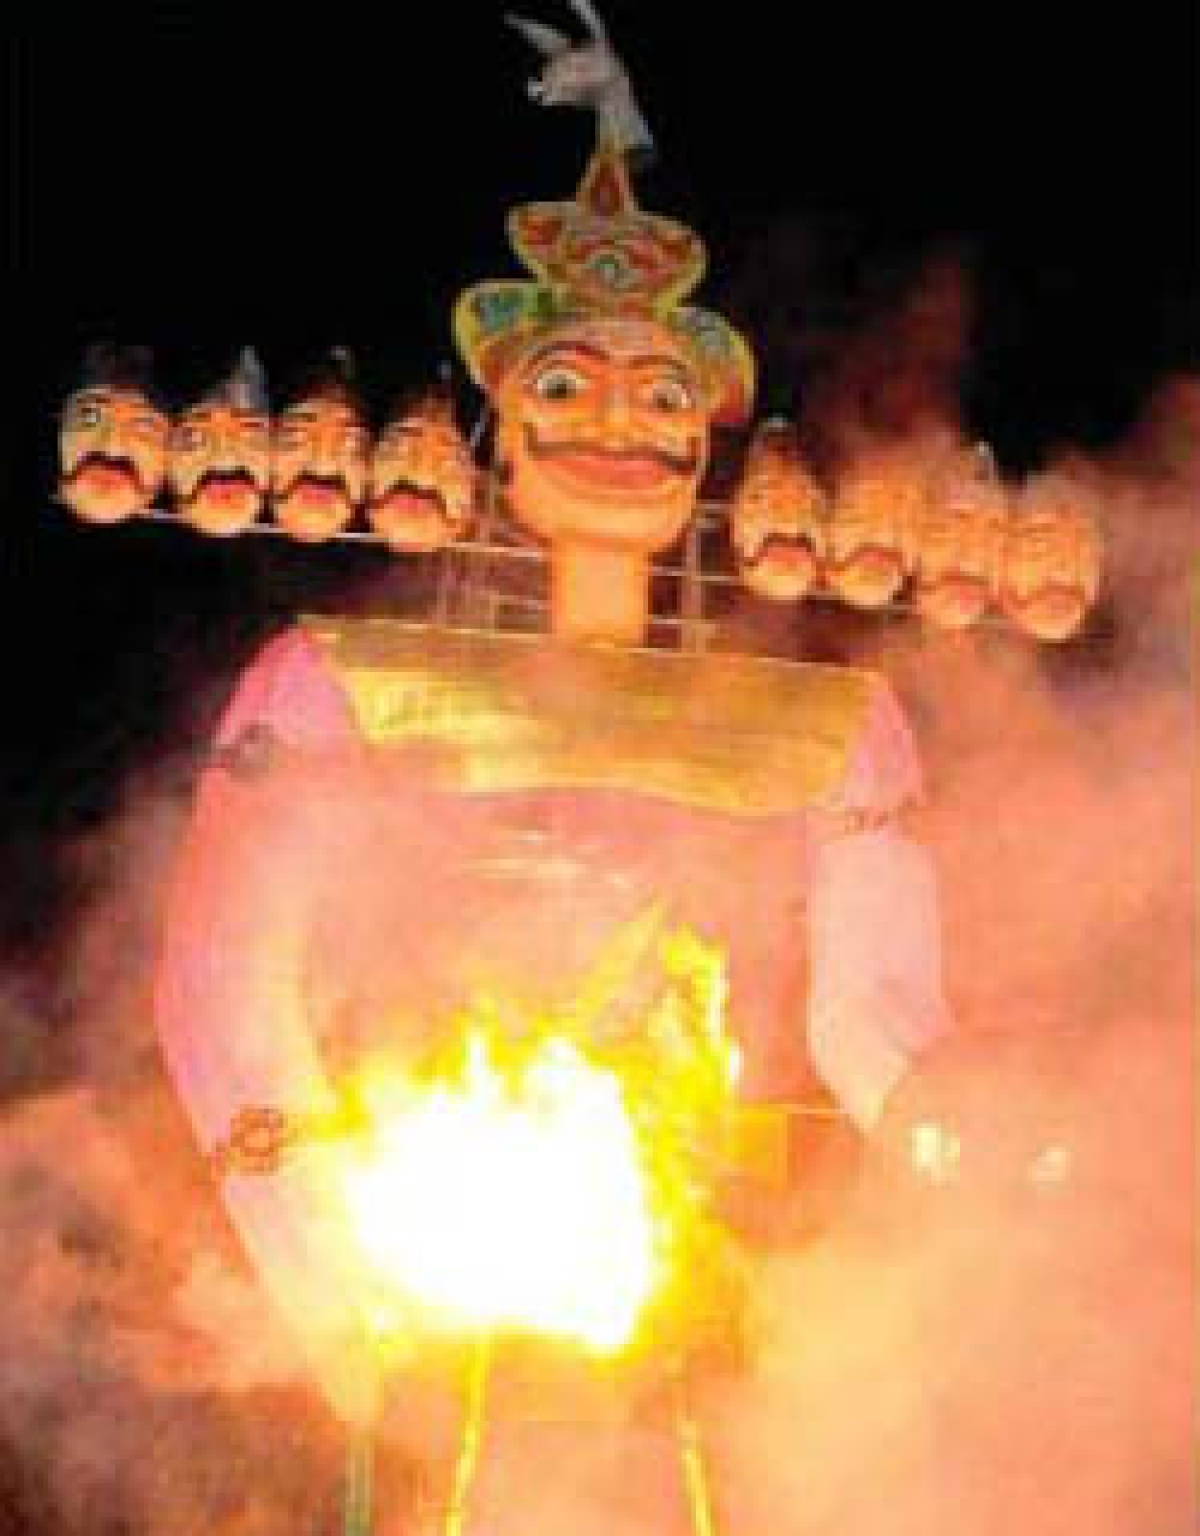 Dussehra festivities come to an end